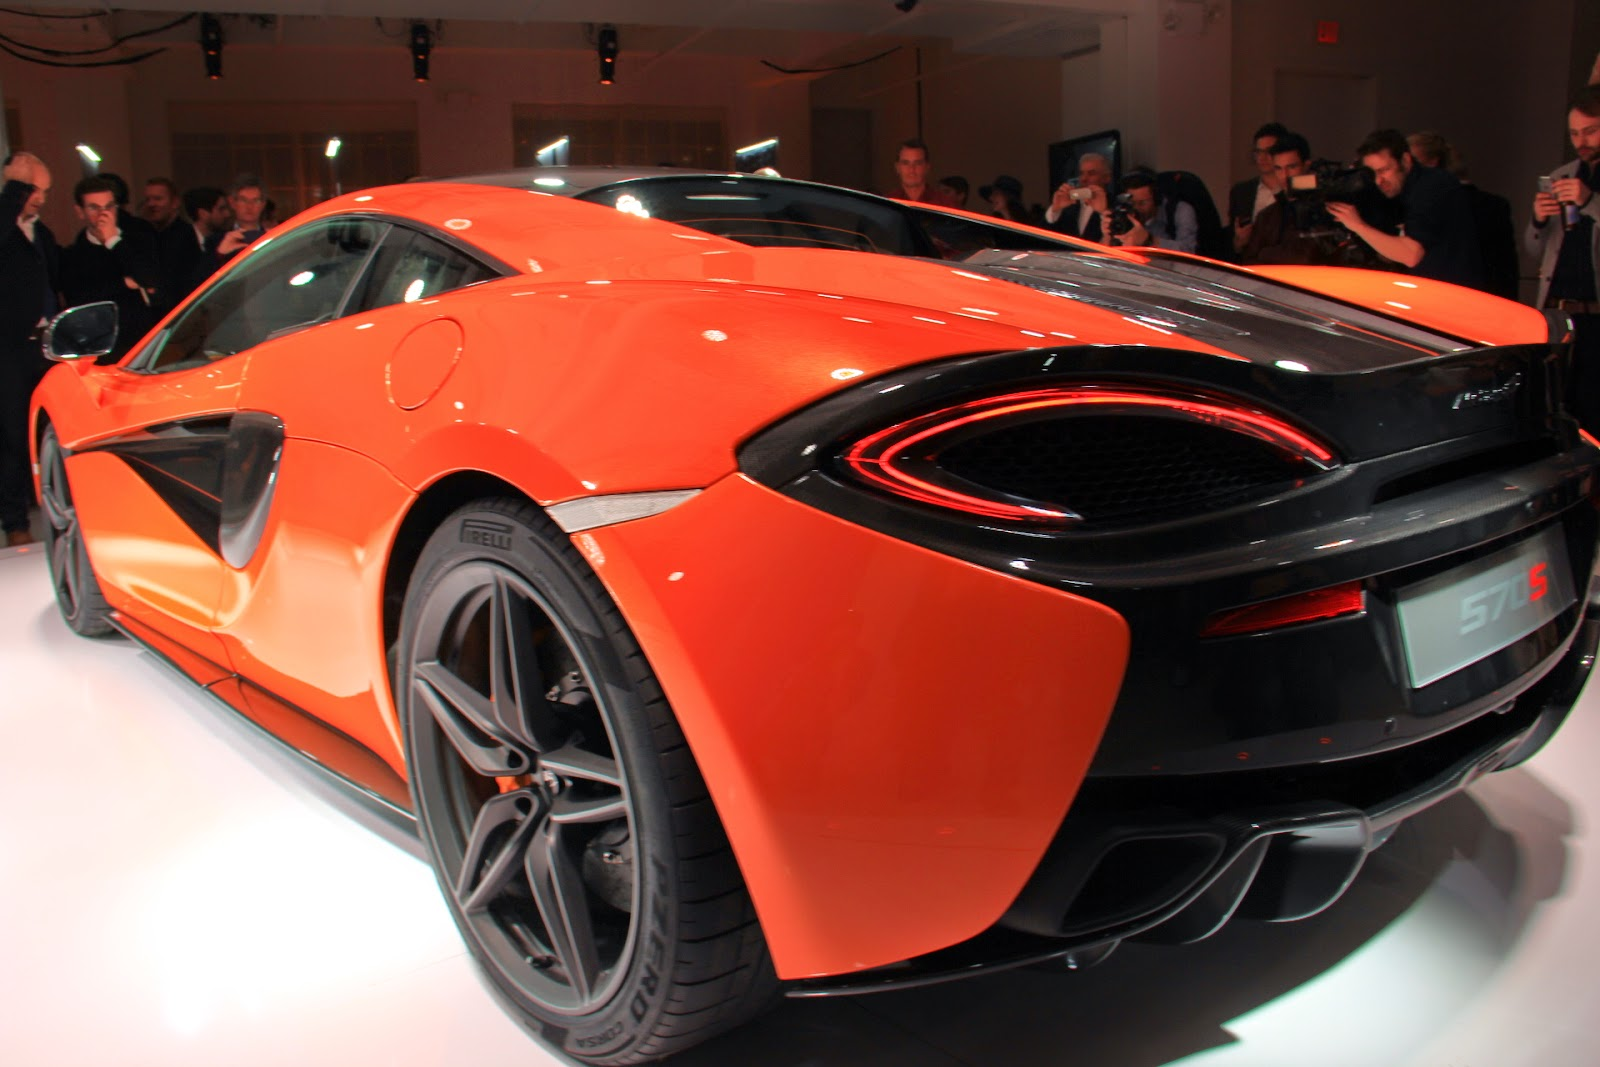 We Take A Close Look At Mclaren S New 570s At Launch Event